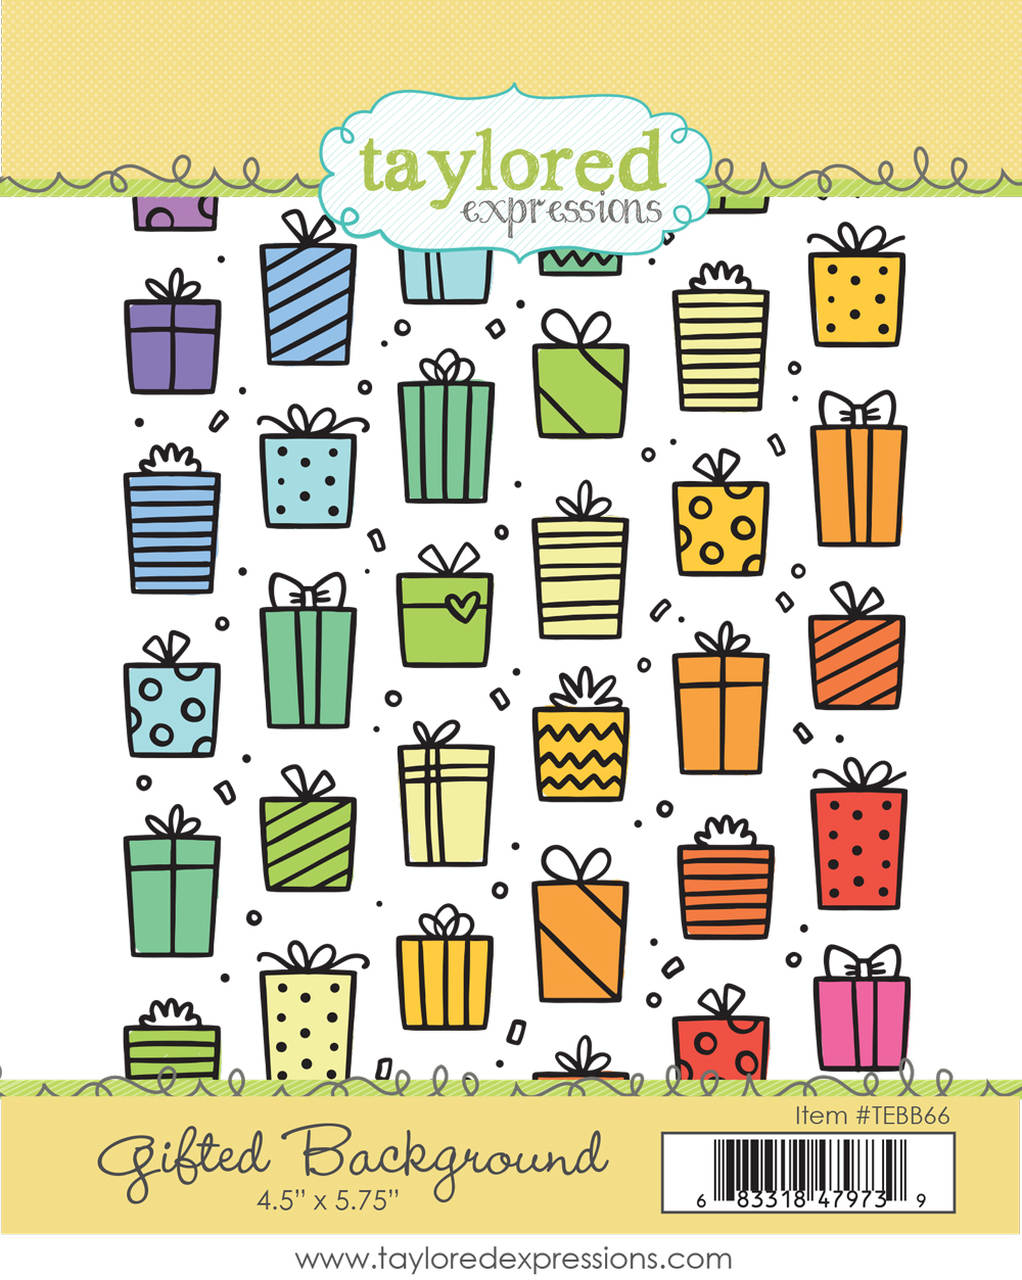 Taylored Expression - Gifted Background